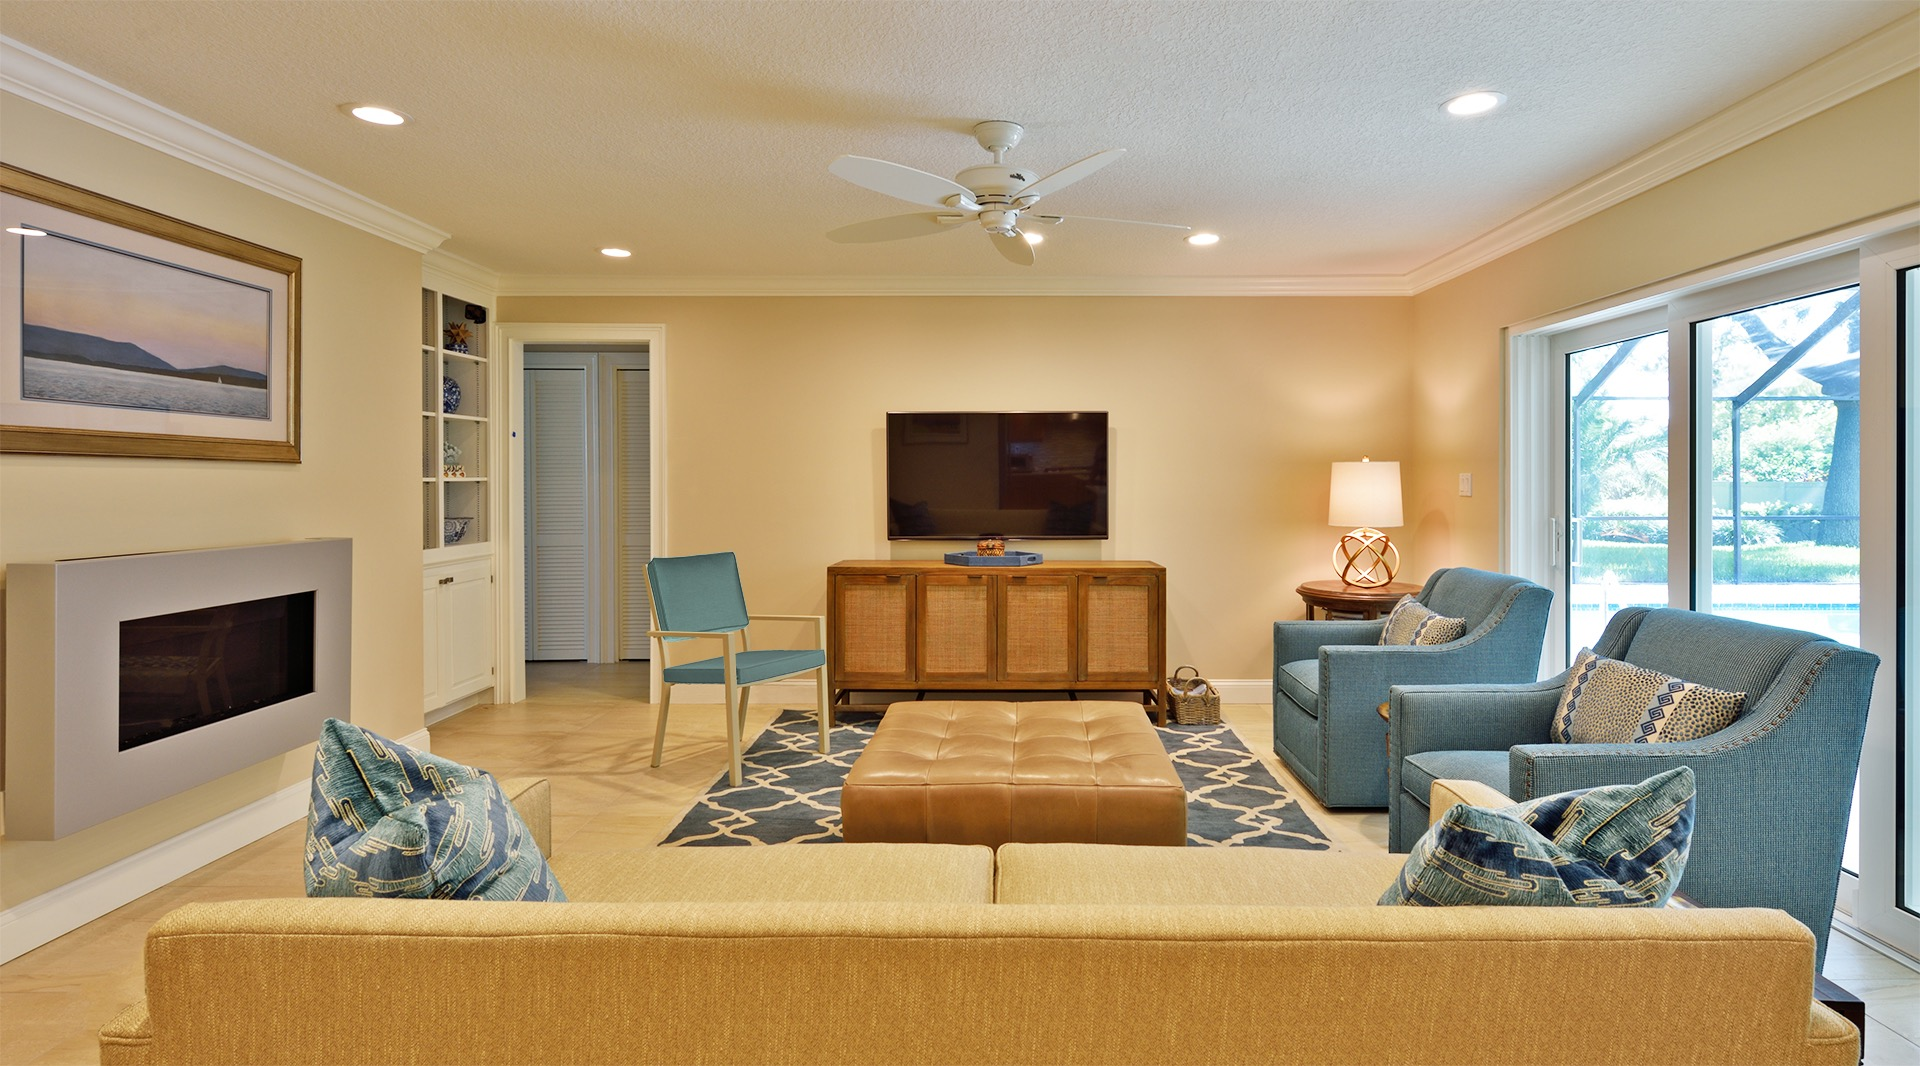 Traditional Modern Living Room With Yellow And Blue Color Scheme (Image 19 of 20)